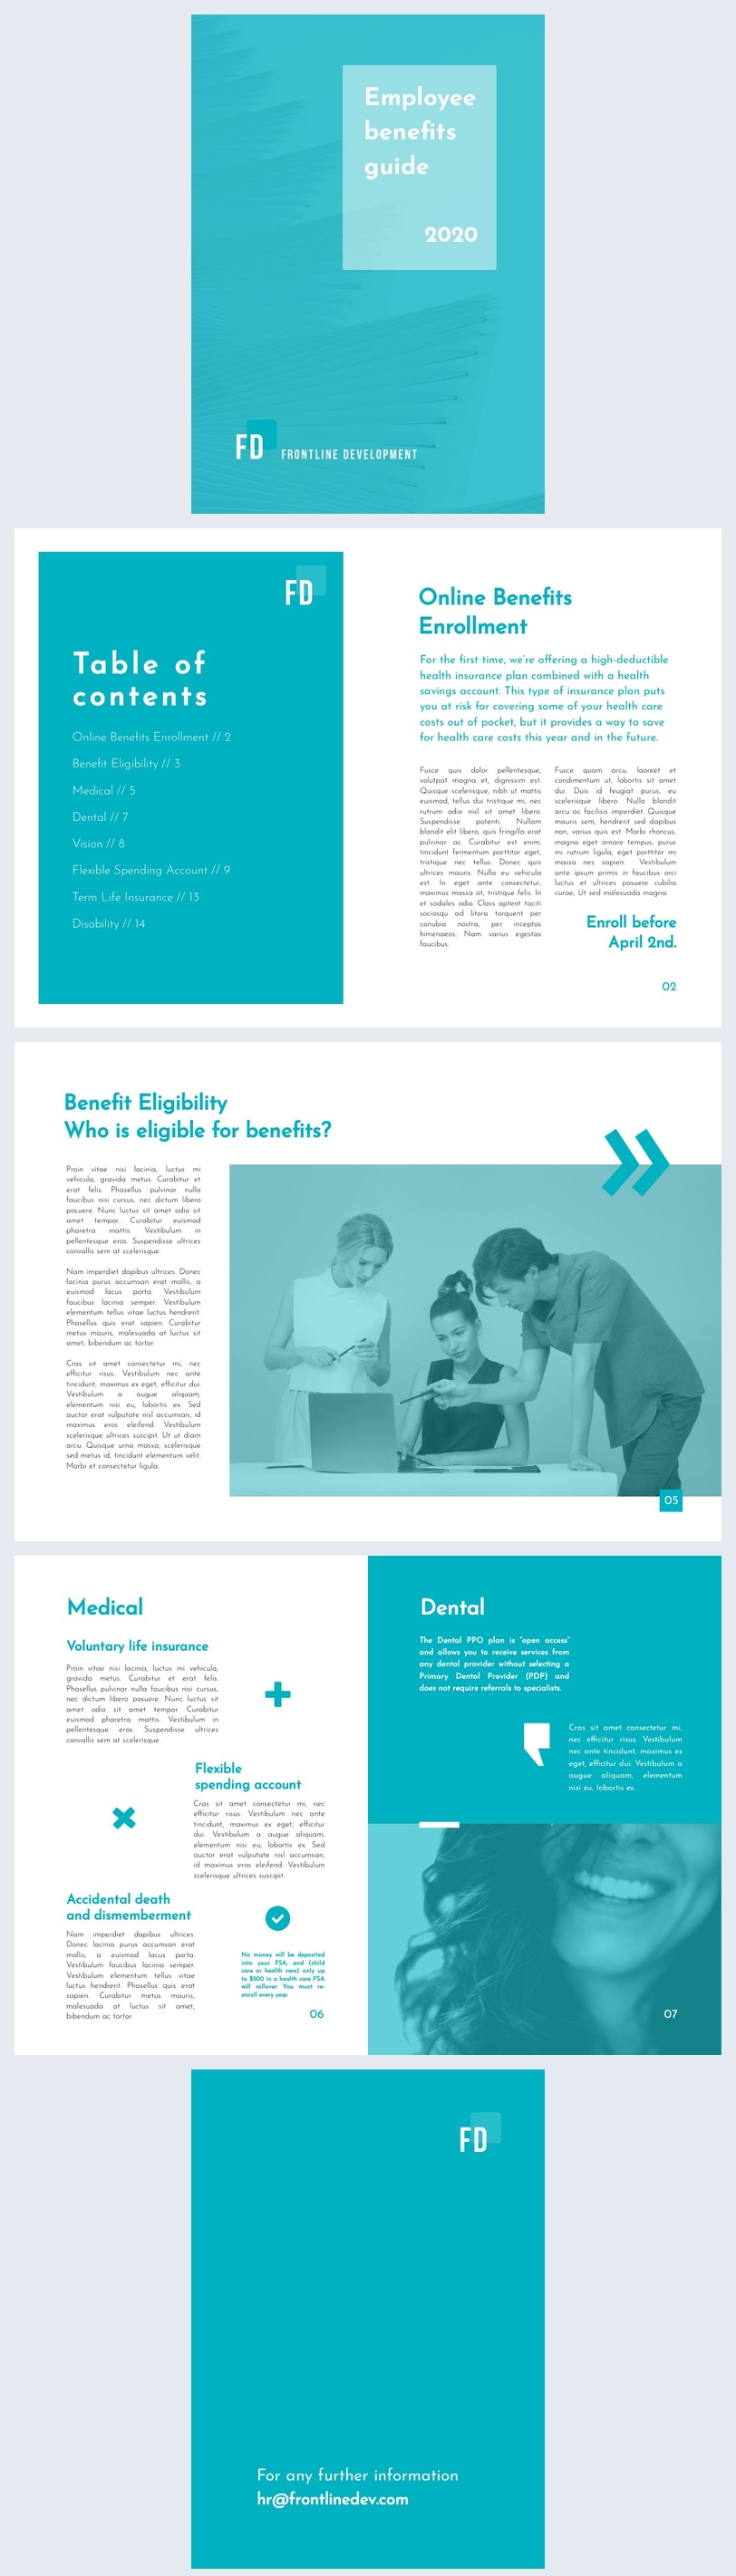 Sample Employee Benefits Guide Template Layout